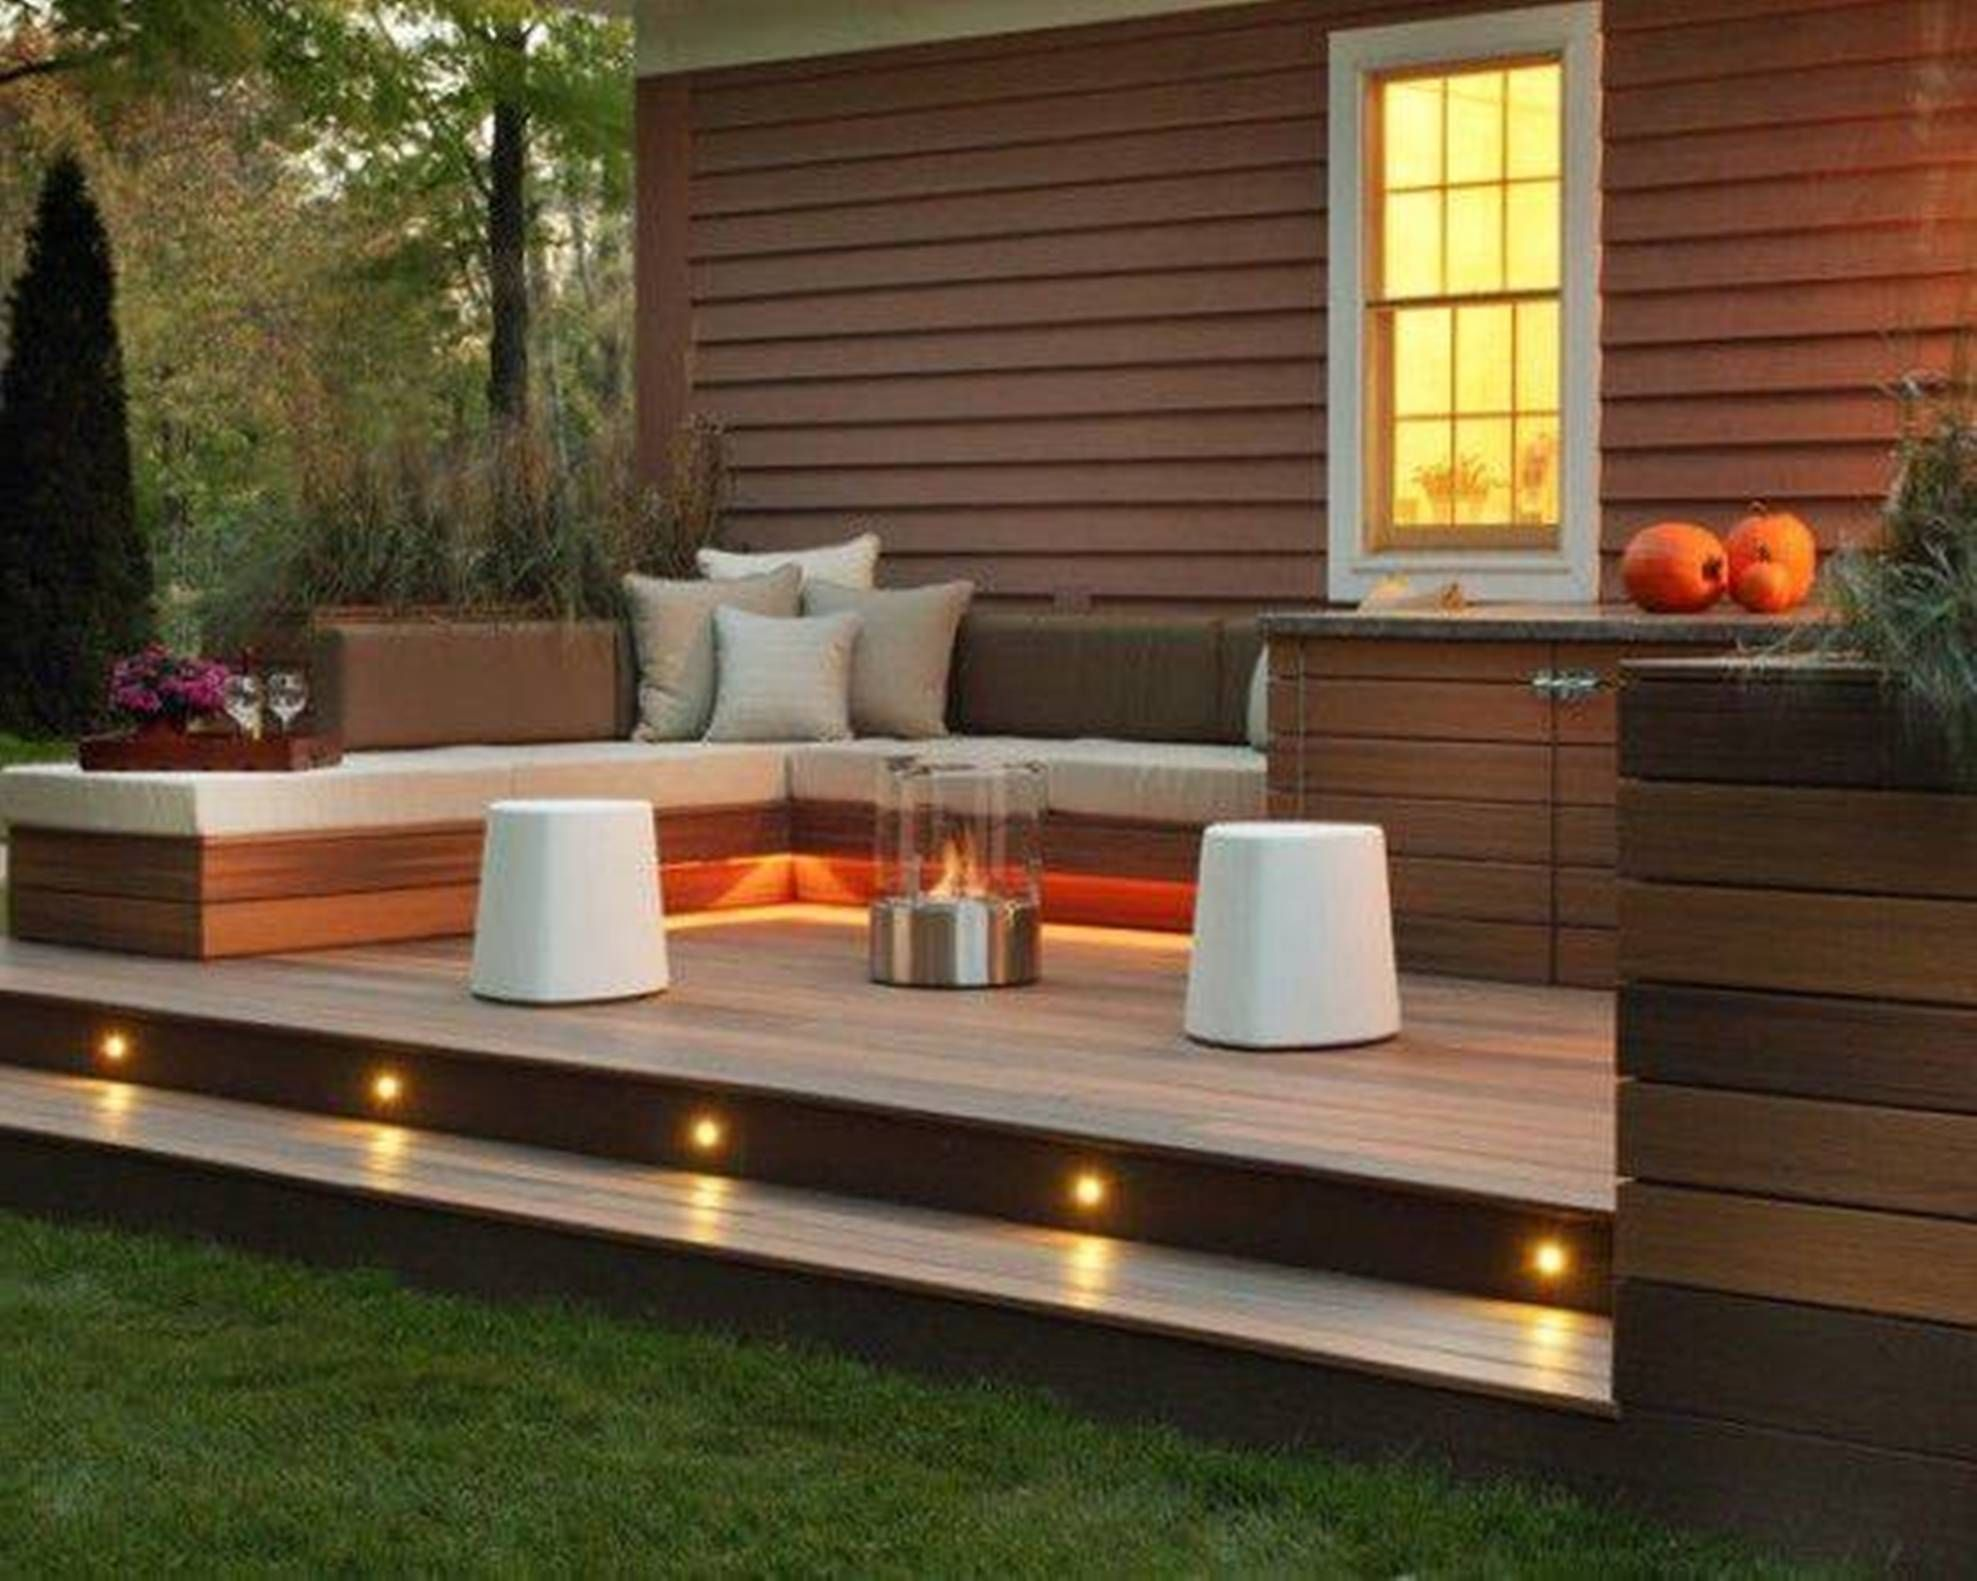 Small Backyard Ideas With Deck on small backyard jacuzzi ideas, small backyard grill ideas, small deck designs, small backyard wall ideas, back yard landscaping design ideas, small roof ideas, small backyard cabana ideas, small backyard greenhouse ideas, small backyard brick ideas, small backyard flooring ideas, small boat dock ideas, small backyard gazebos, small backyard designs, small backyard house ideas, small appliances ideas, small fenced backyard ideas, small backyard lounge ideas, small backyard umbrella ideas, small backyard home, small patio ideas,